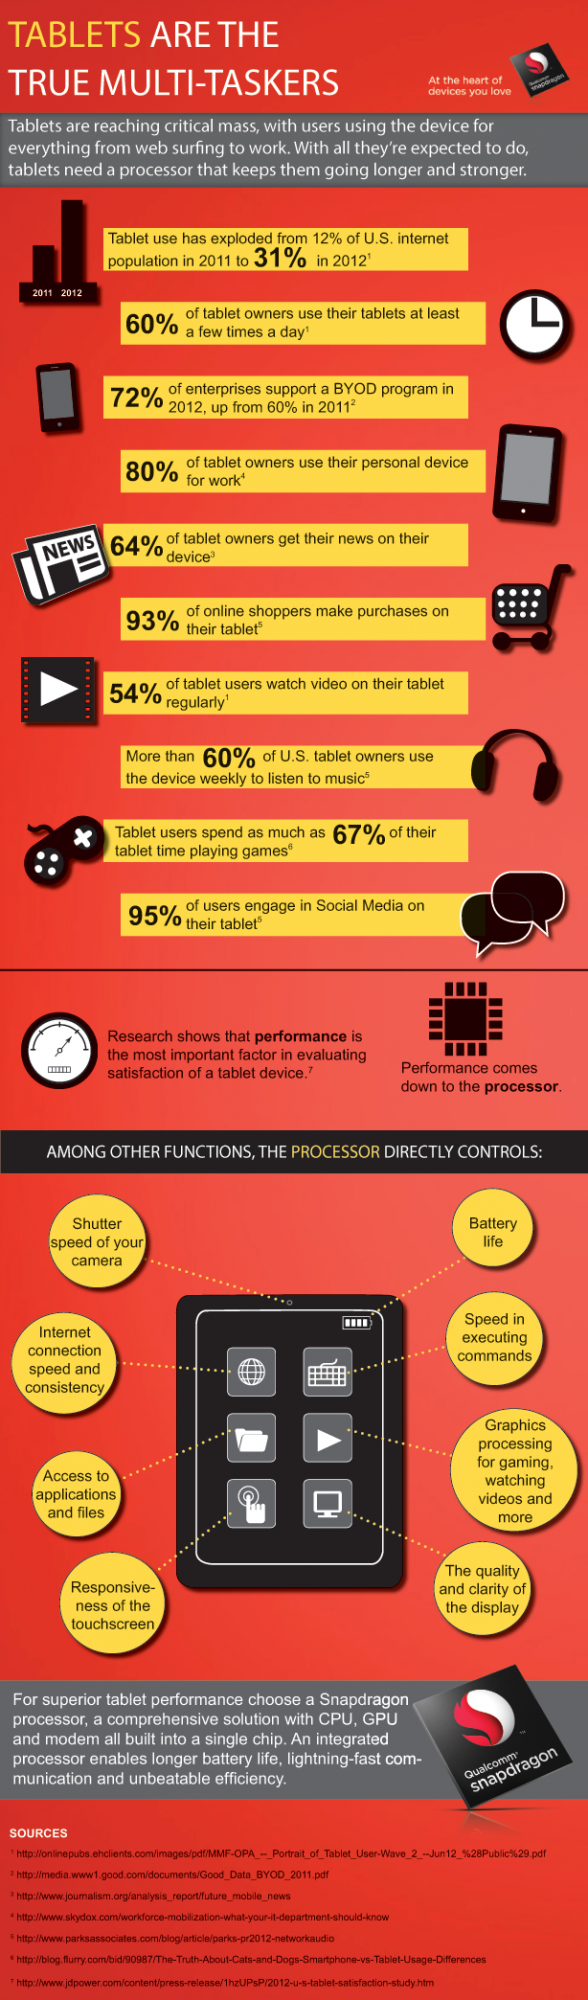 snapdragon-infographic-tablet-performance